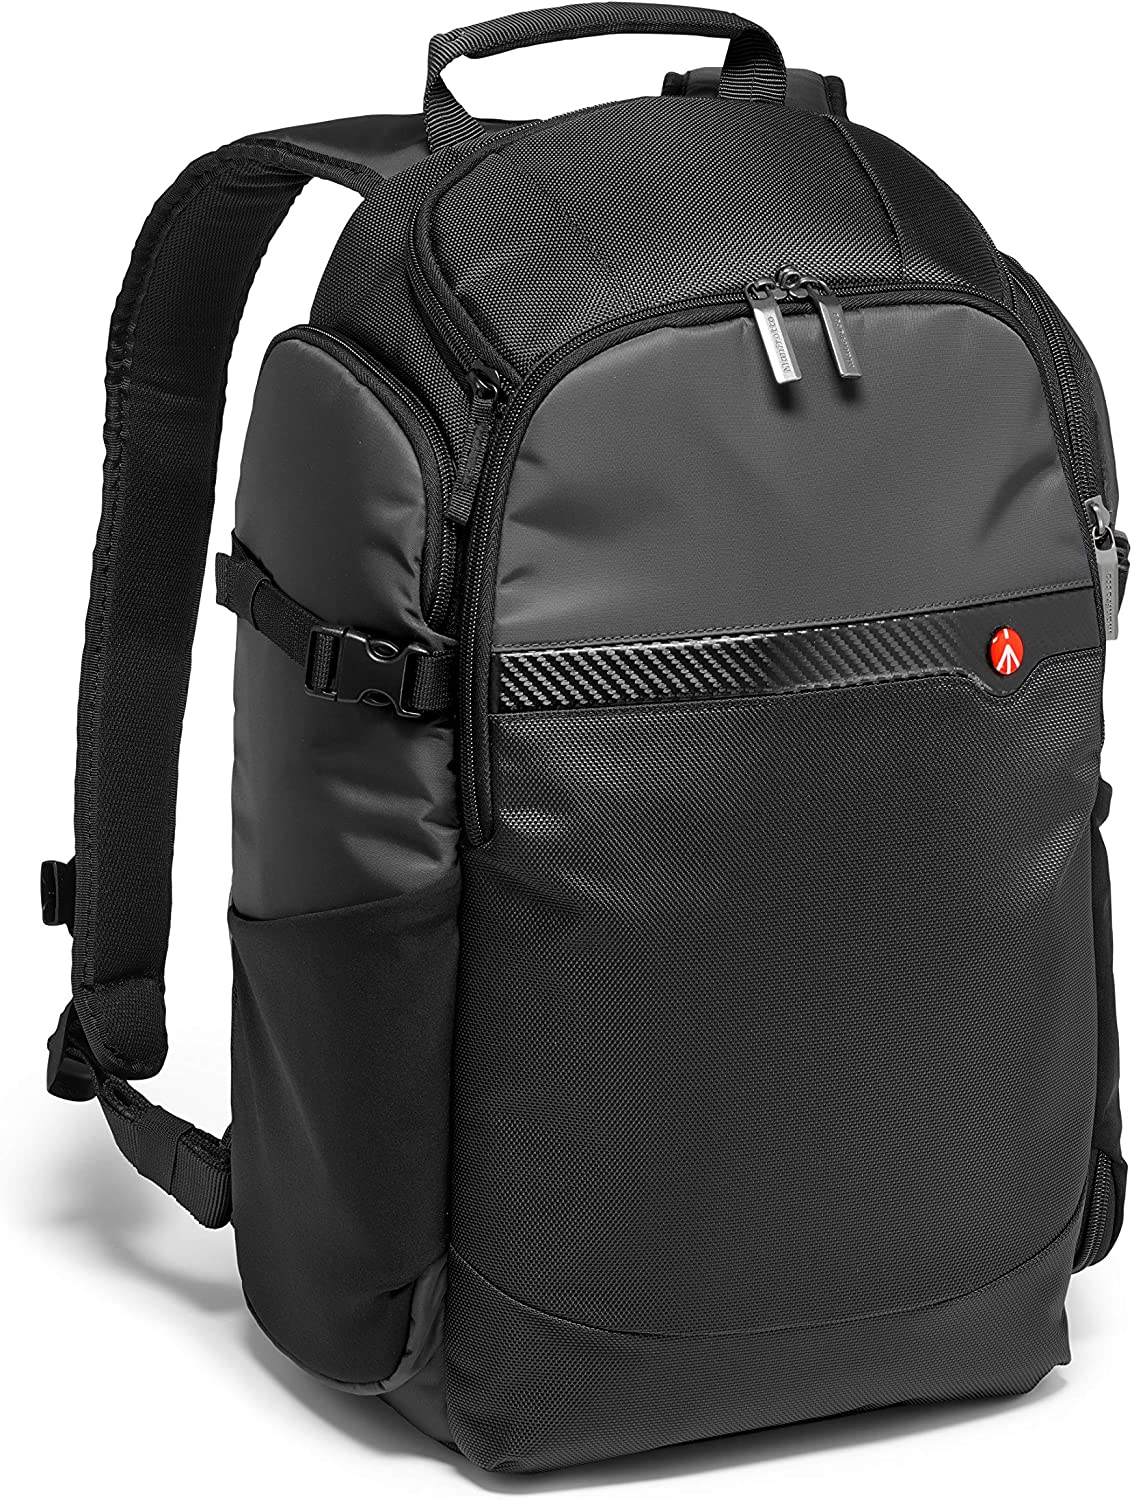 Manfrotto Advanced Befree Backpack for DSLR/CSC Cameras and Drone, Gray